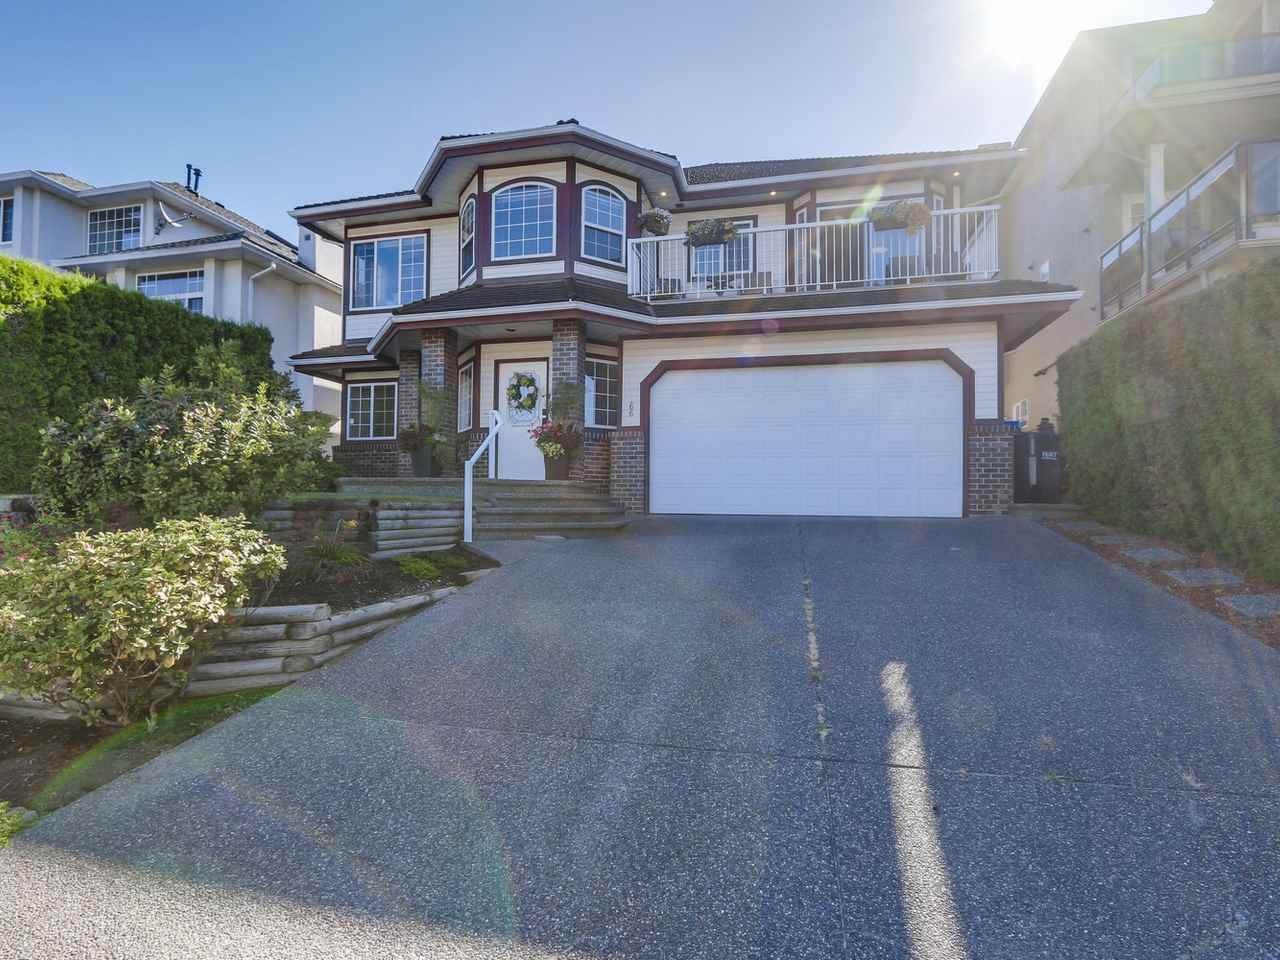 Main Photo: 1166 FLETCHER Way in Port Coquitlam: Citadel PQ House for sale : MLS® # R2124771